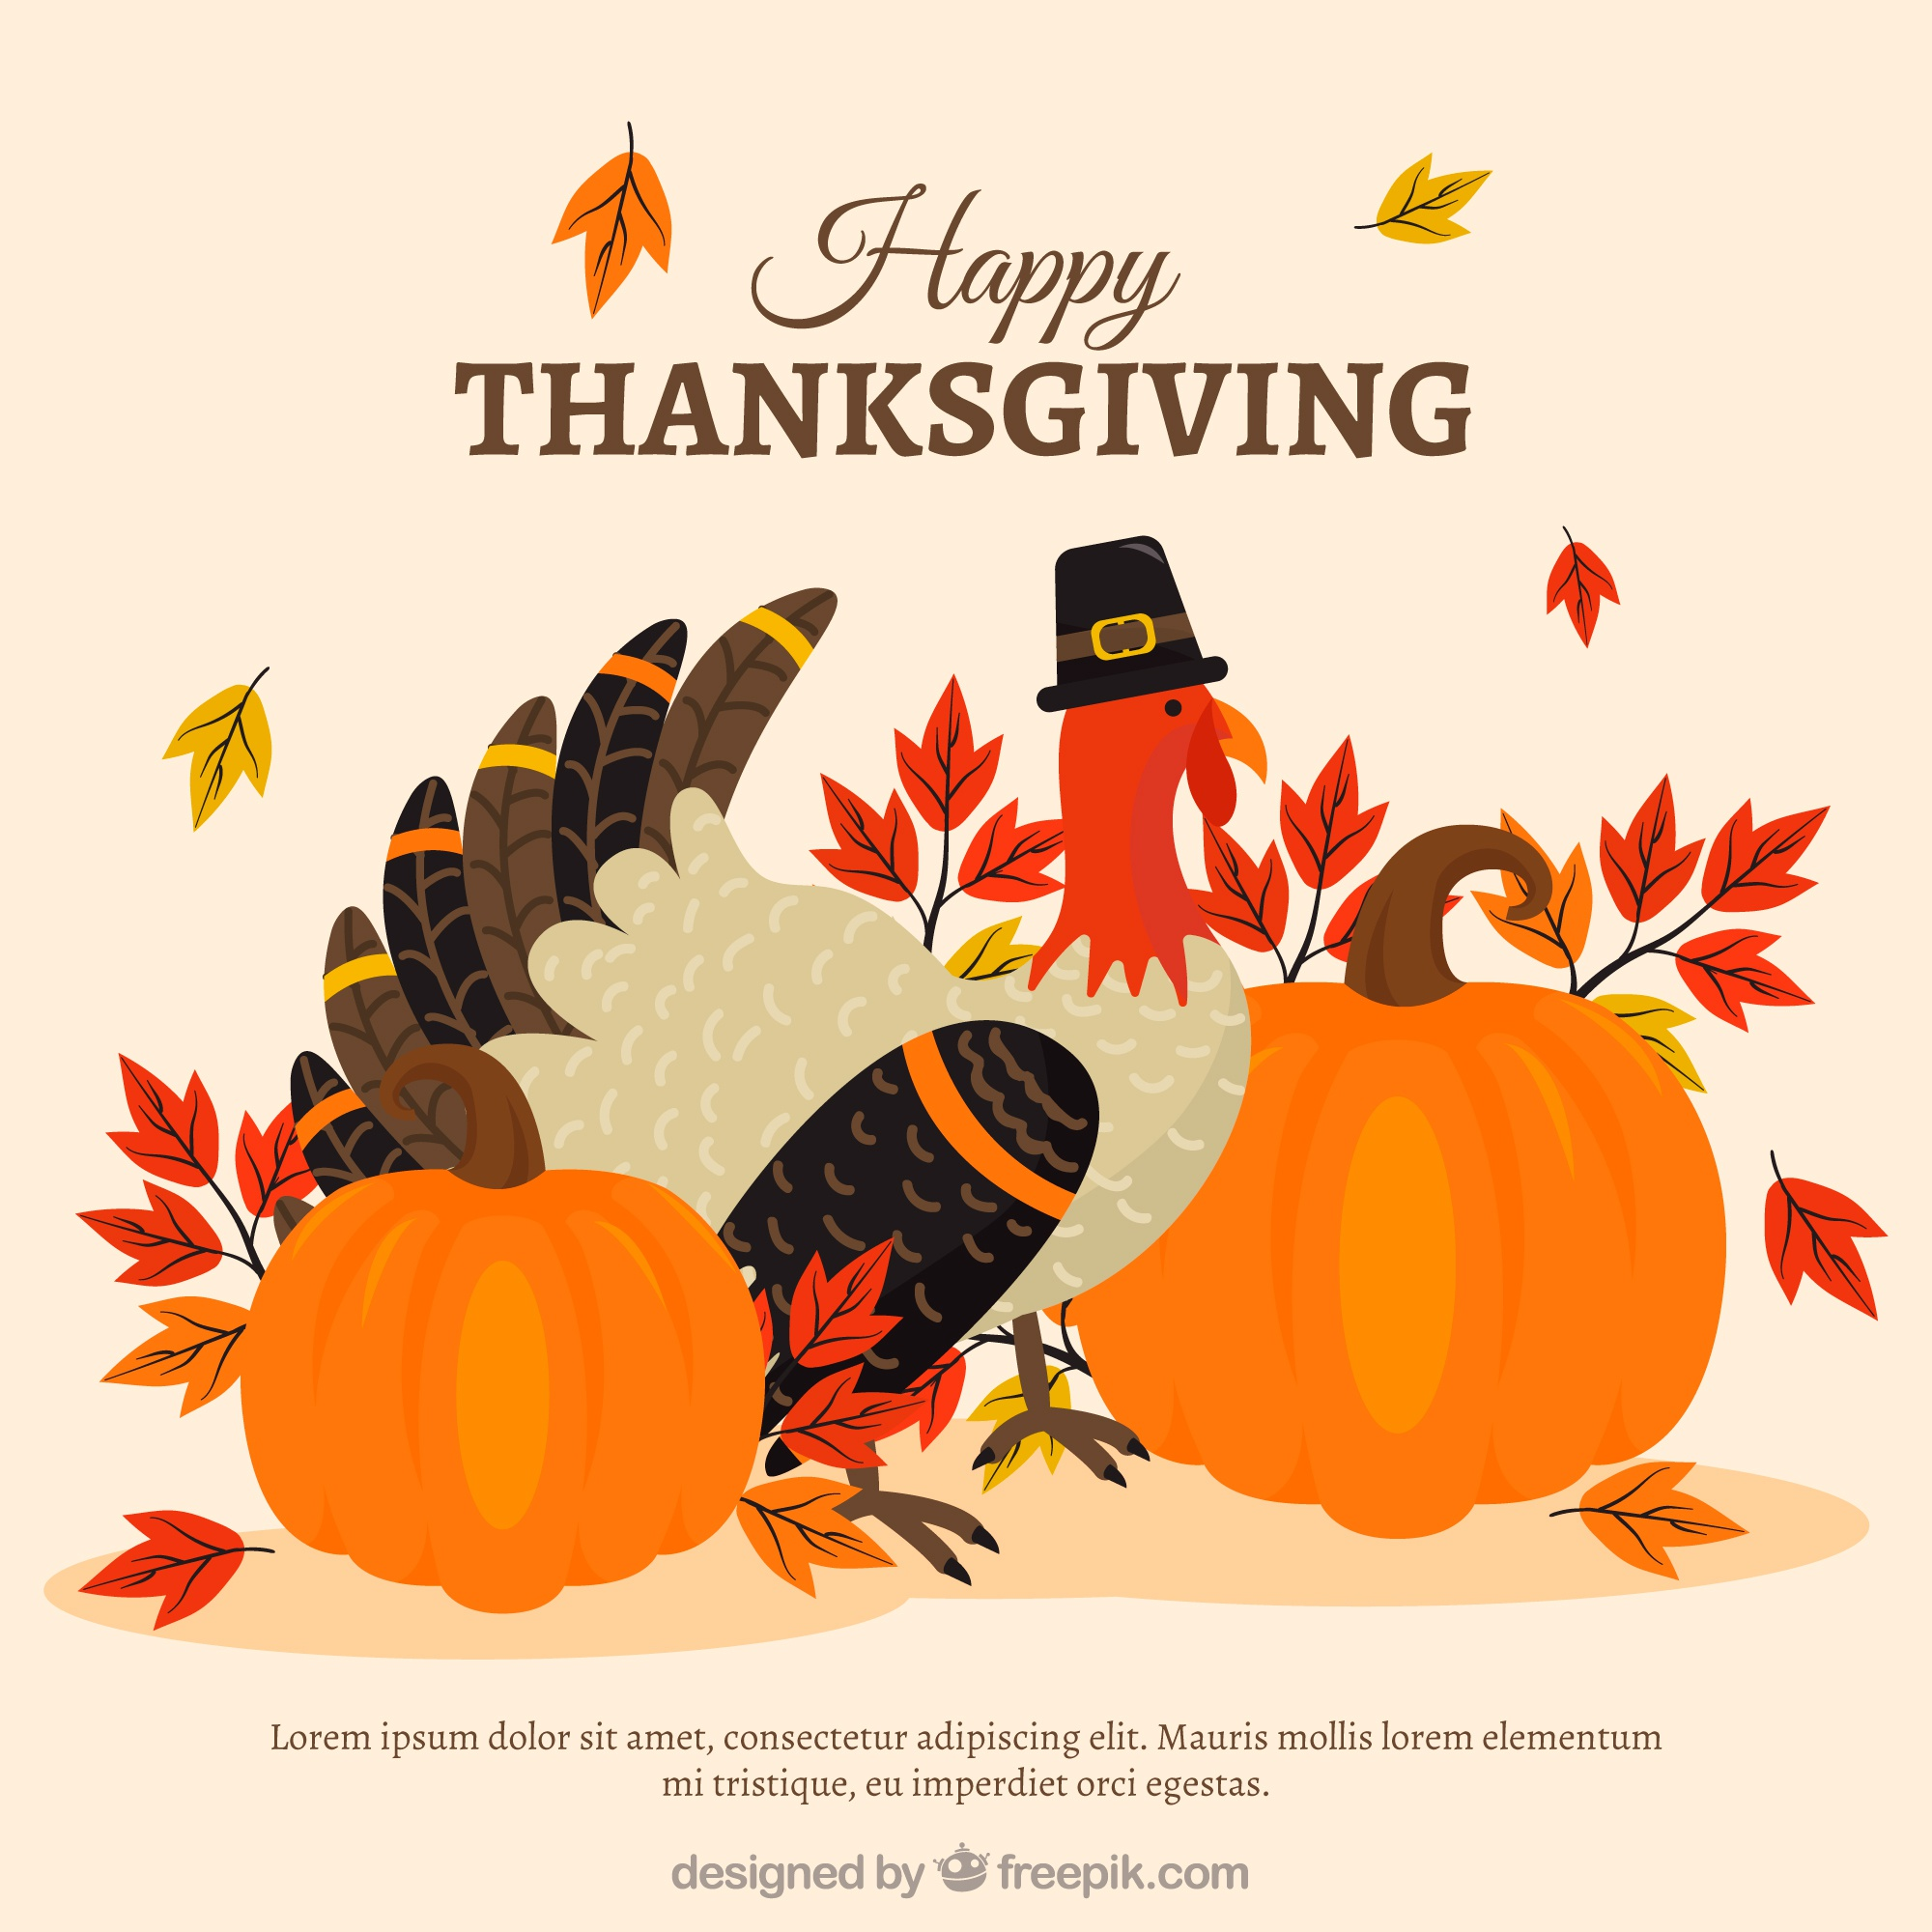 Thanksgiving background with elegant turkey and pumpkins